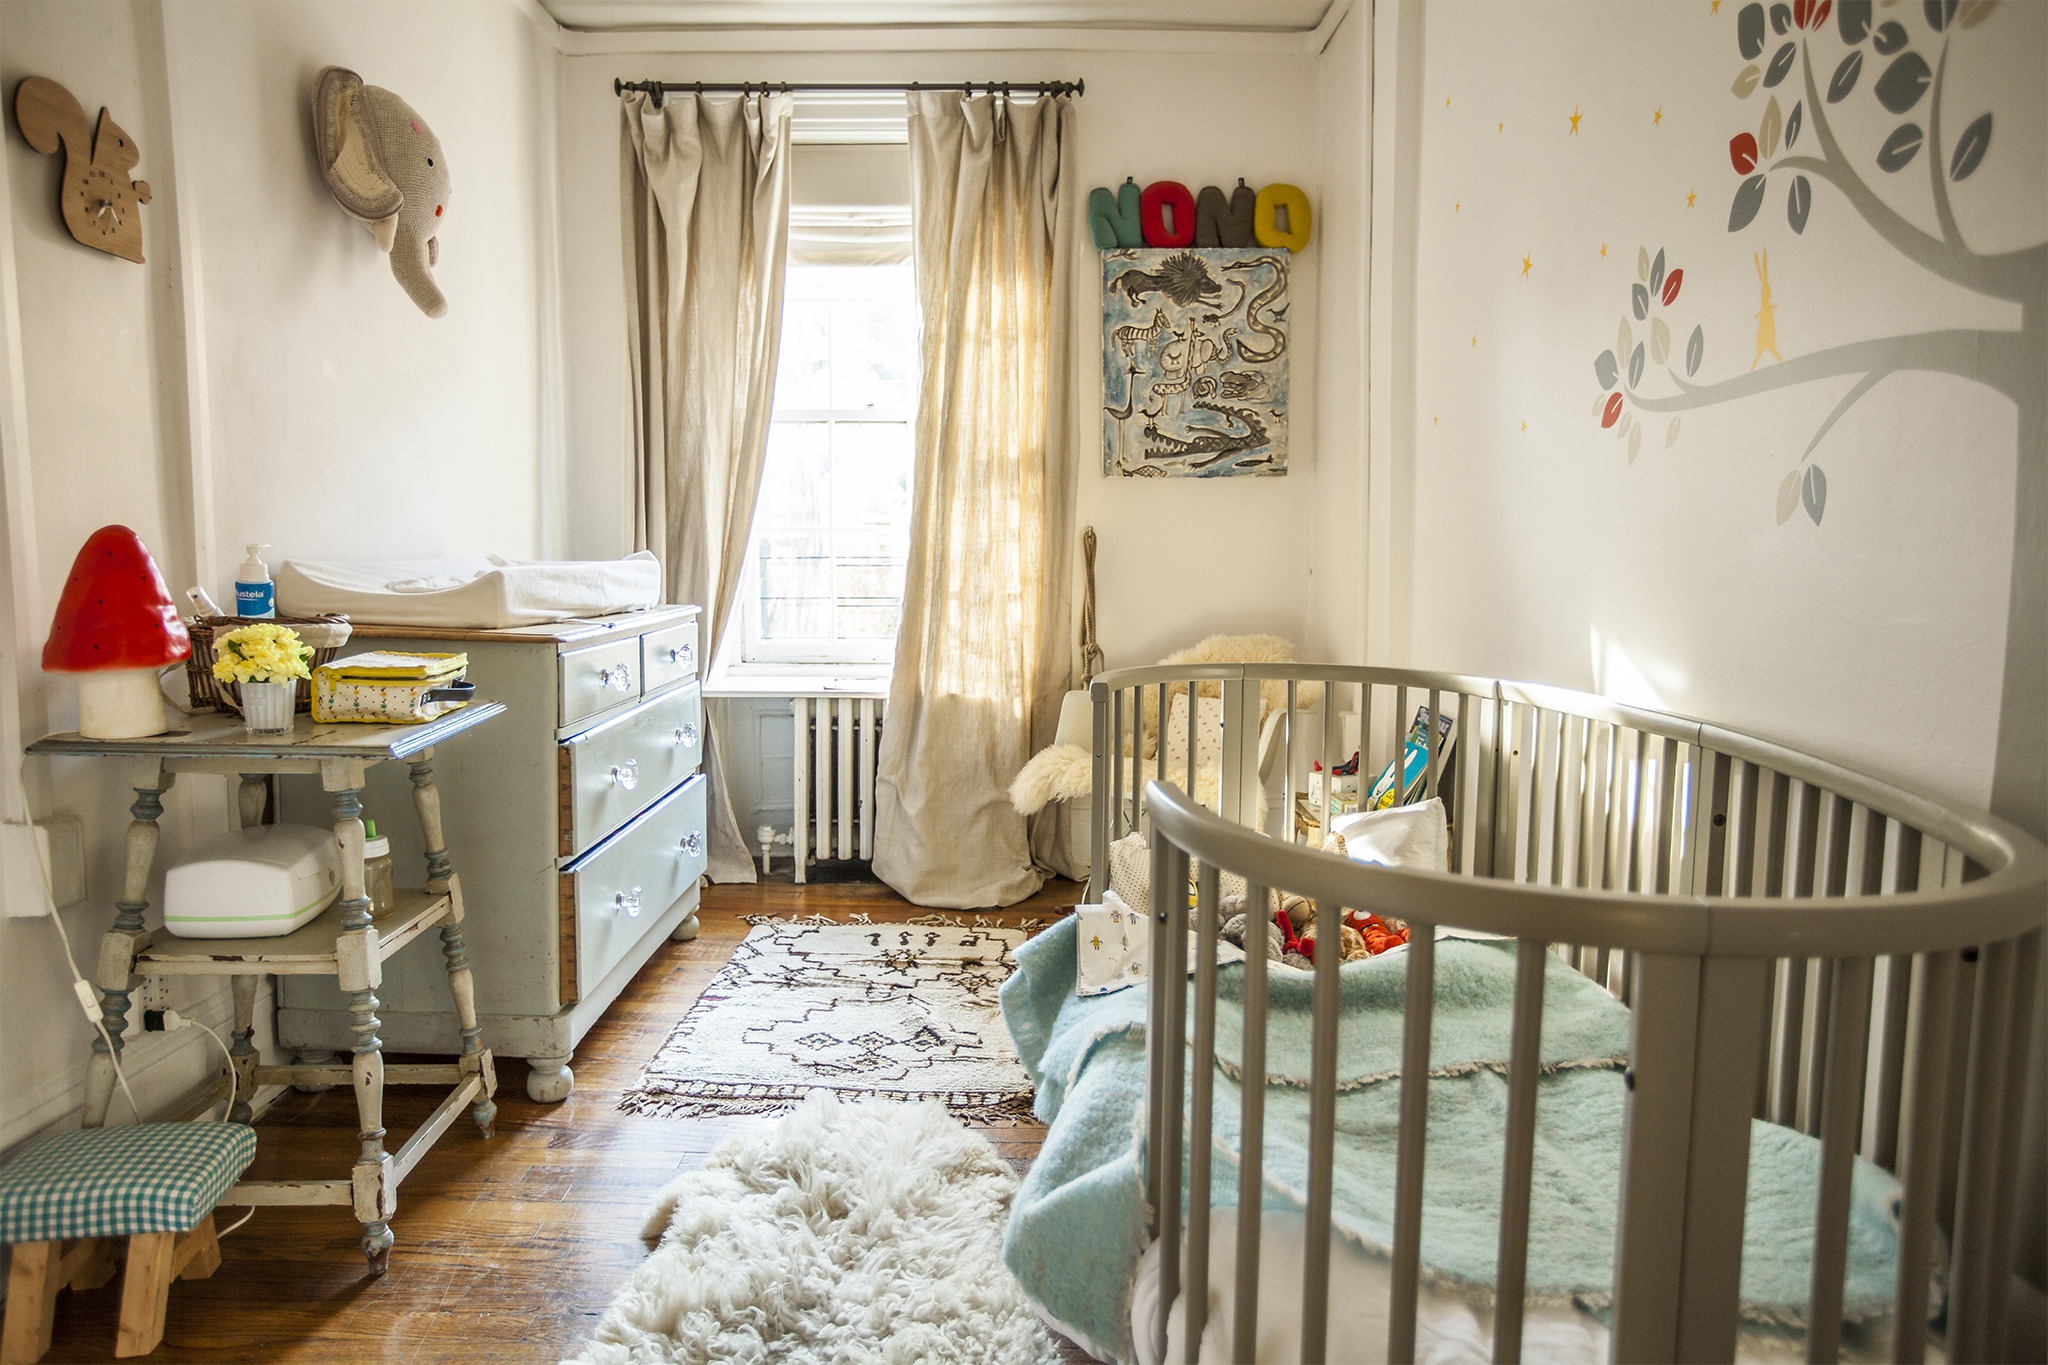 3BR in the West Village